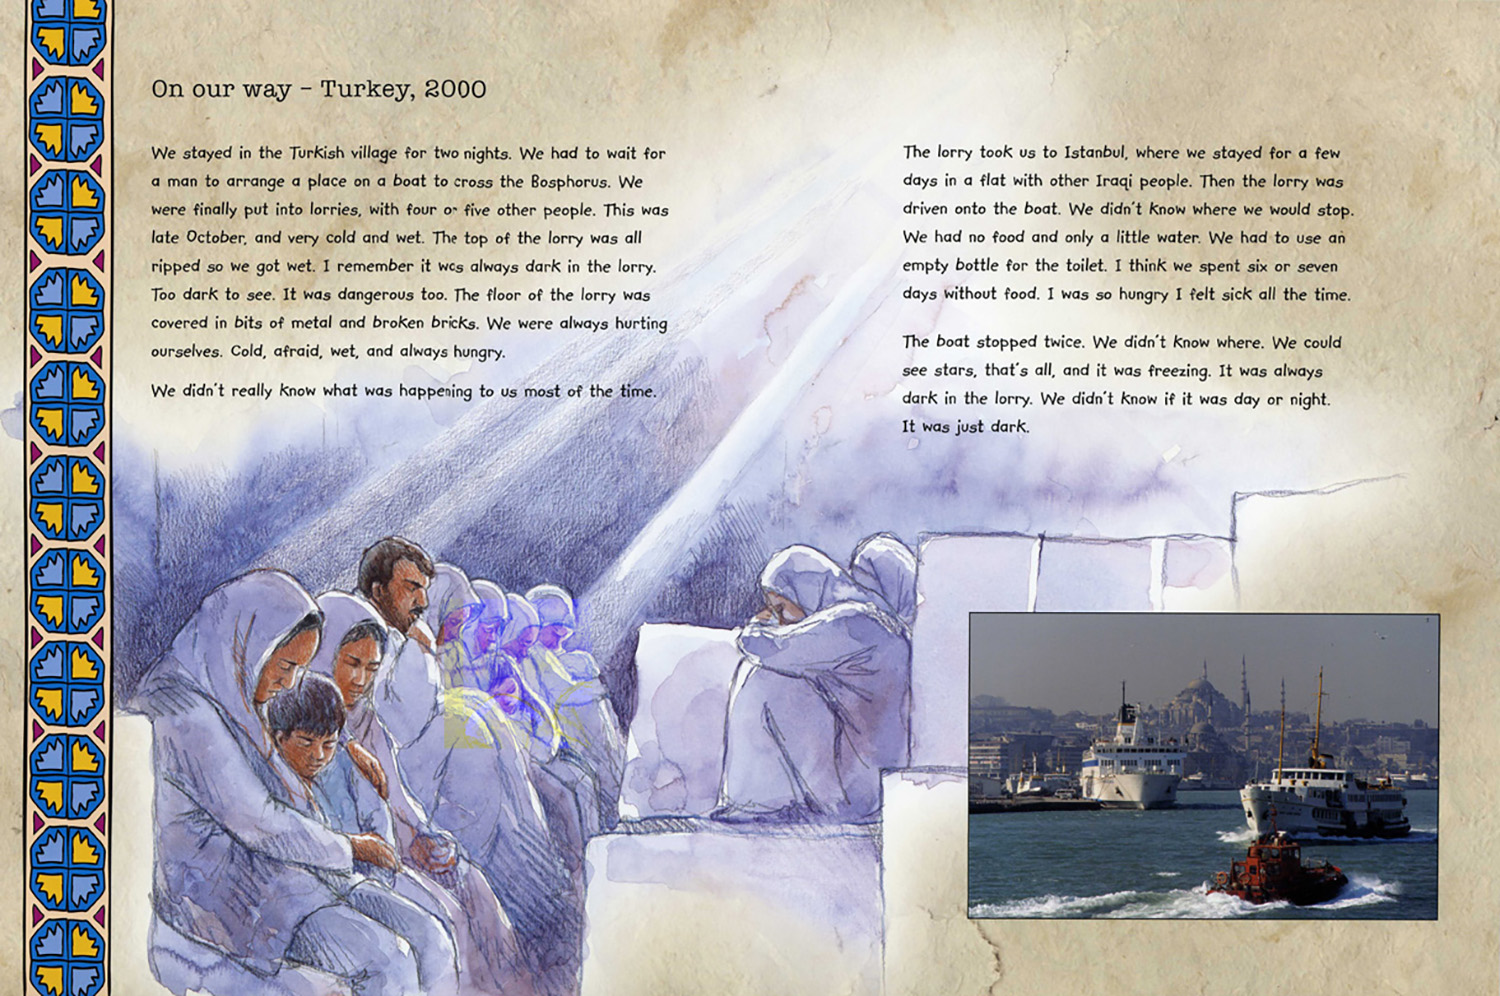 Escape in back of a lorry from 'Mohammed's Journey'